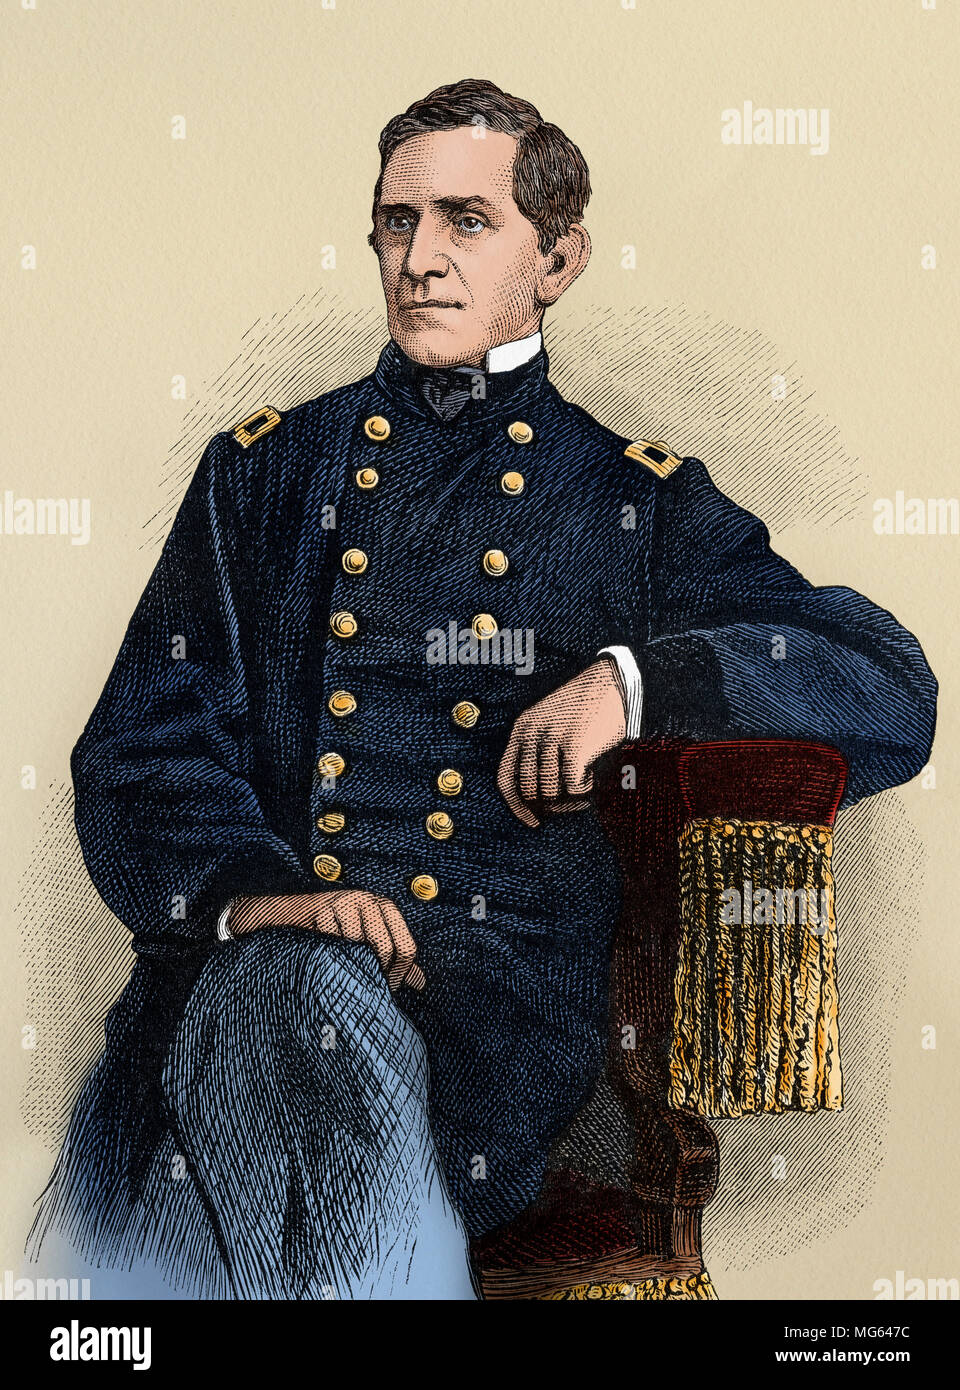 Union Army Major-General Edward Sprigg Canby. Digitally colored woodcut - Stock Image